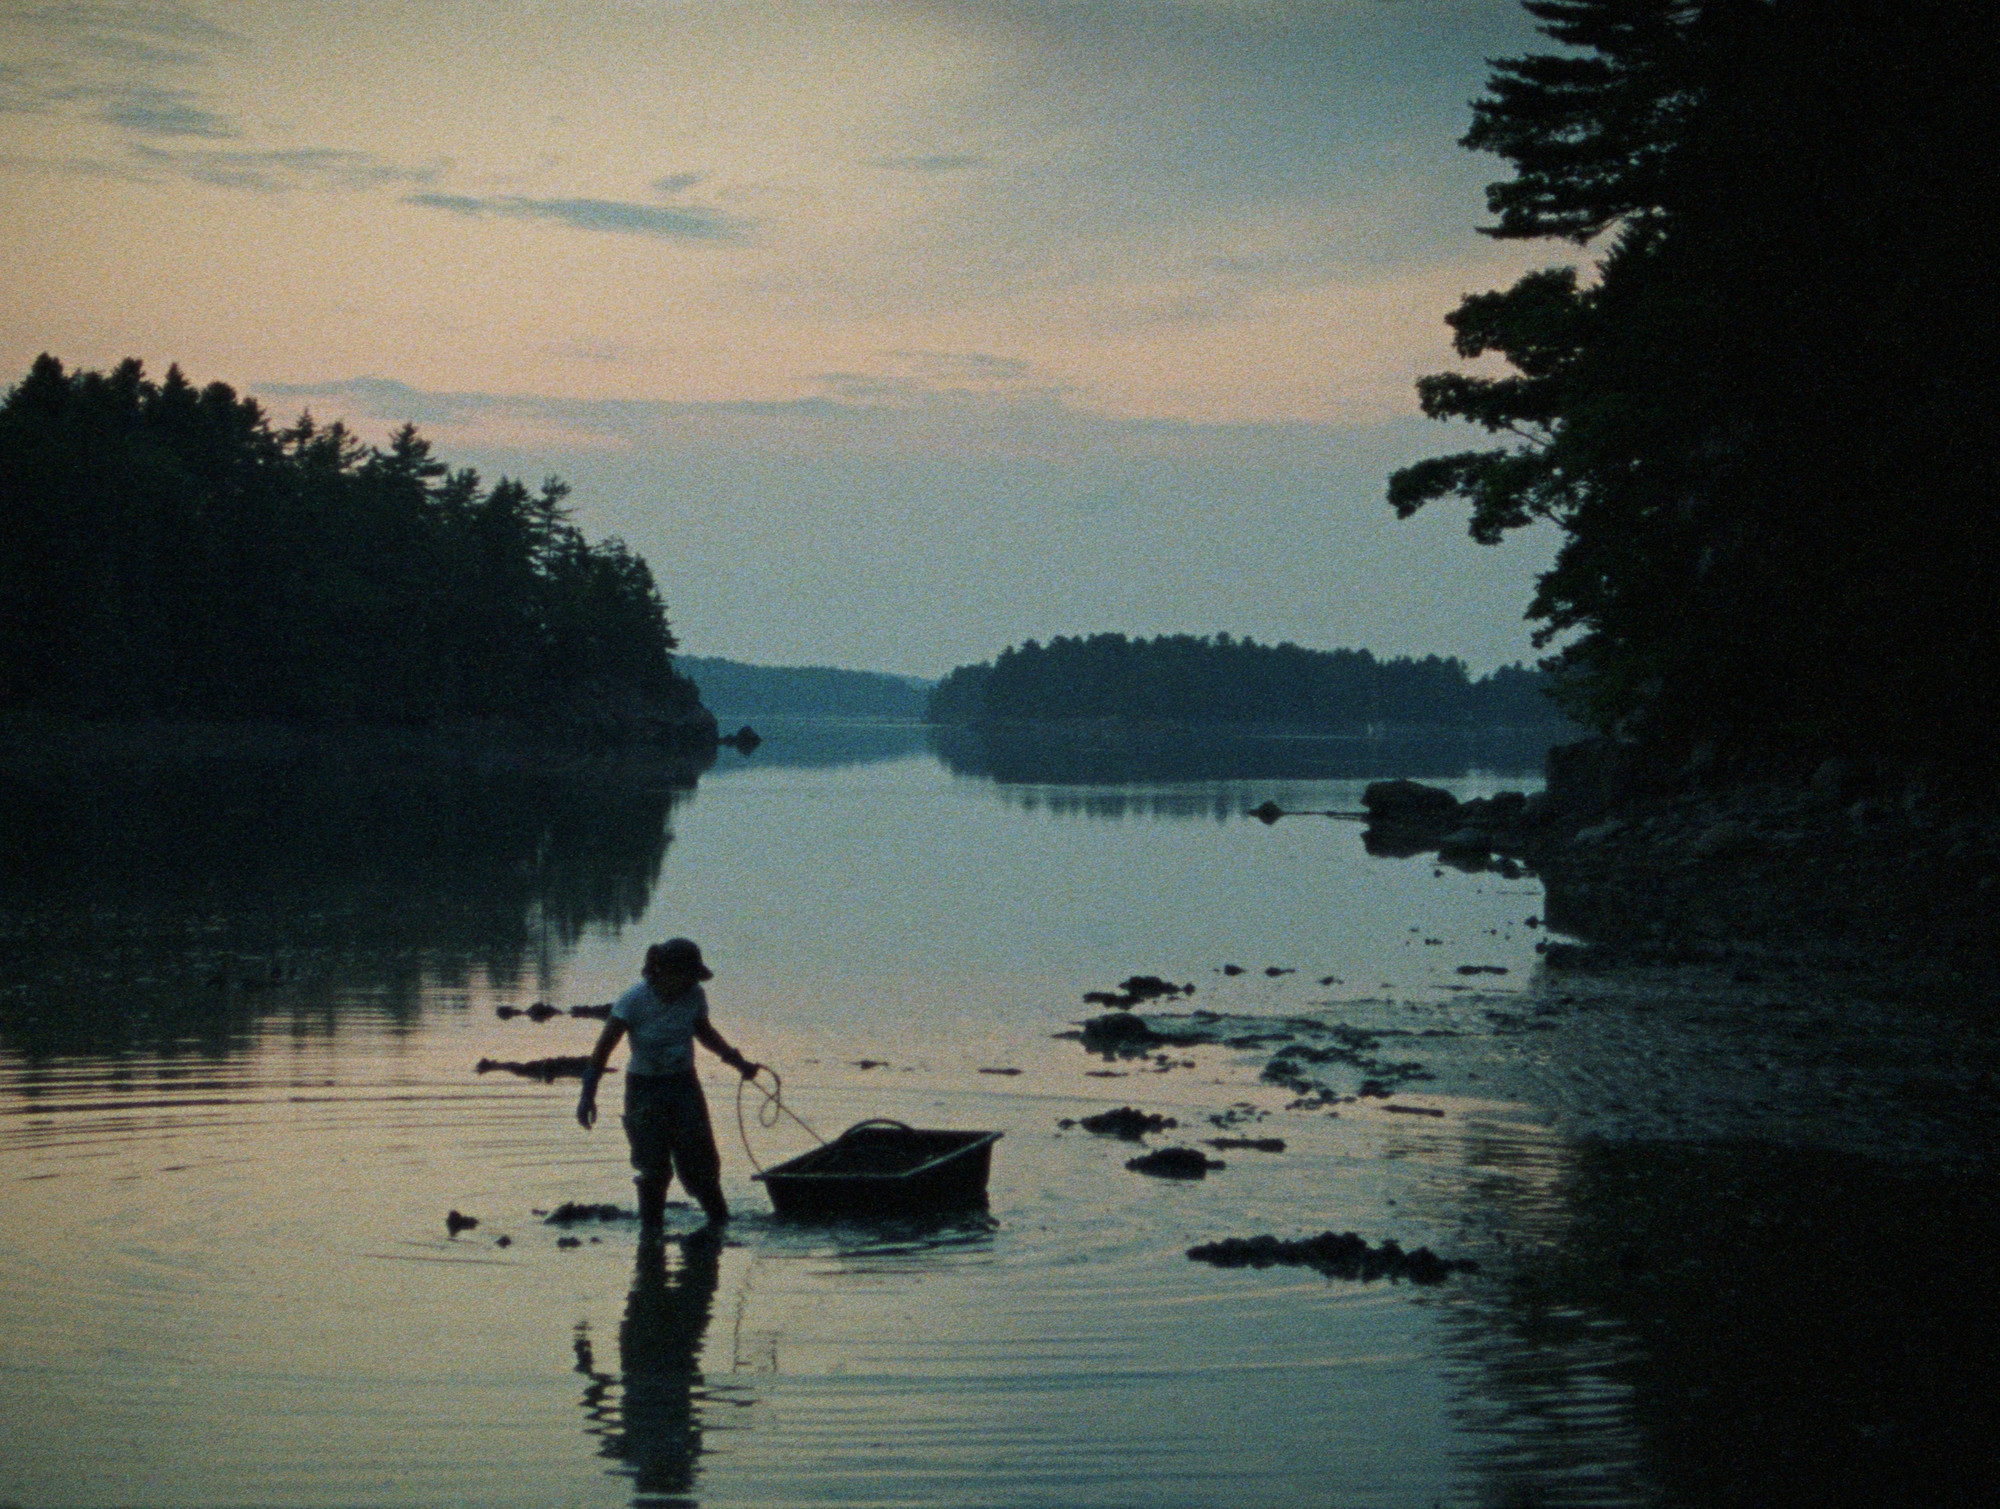 Double Tide. 2009. USA. Directed by Sharon Lockhart